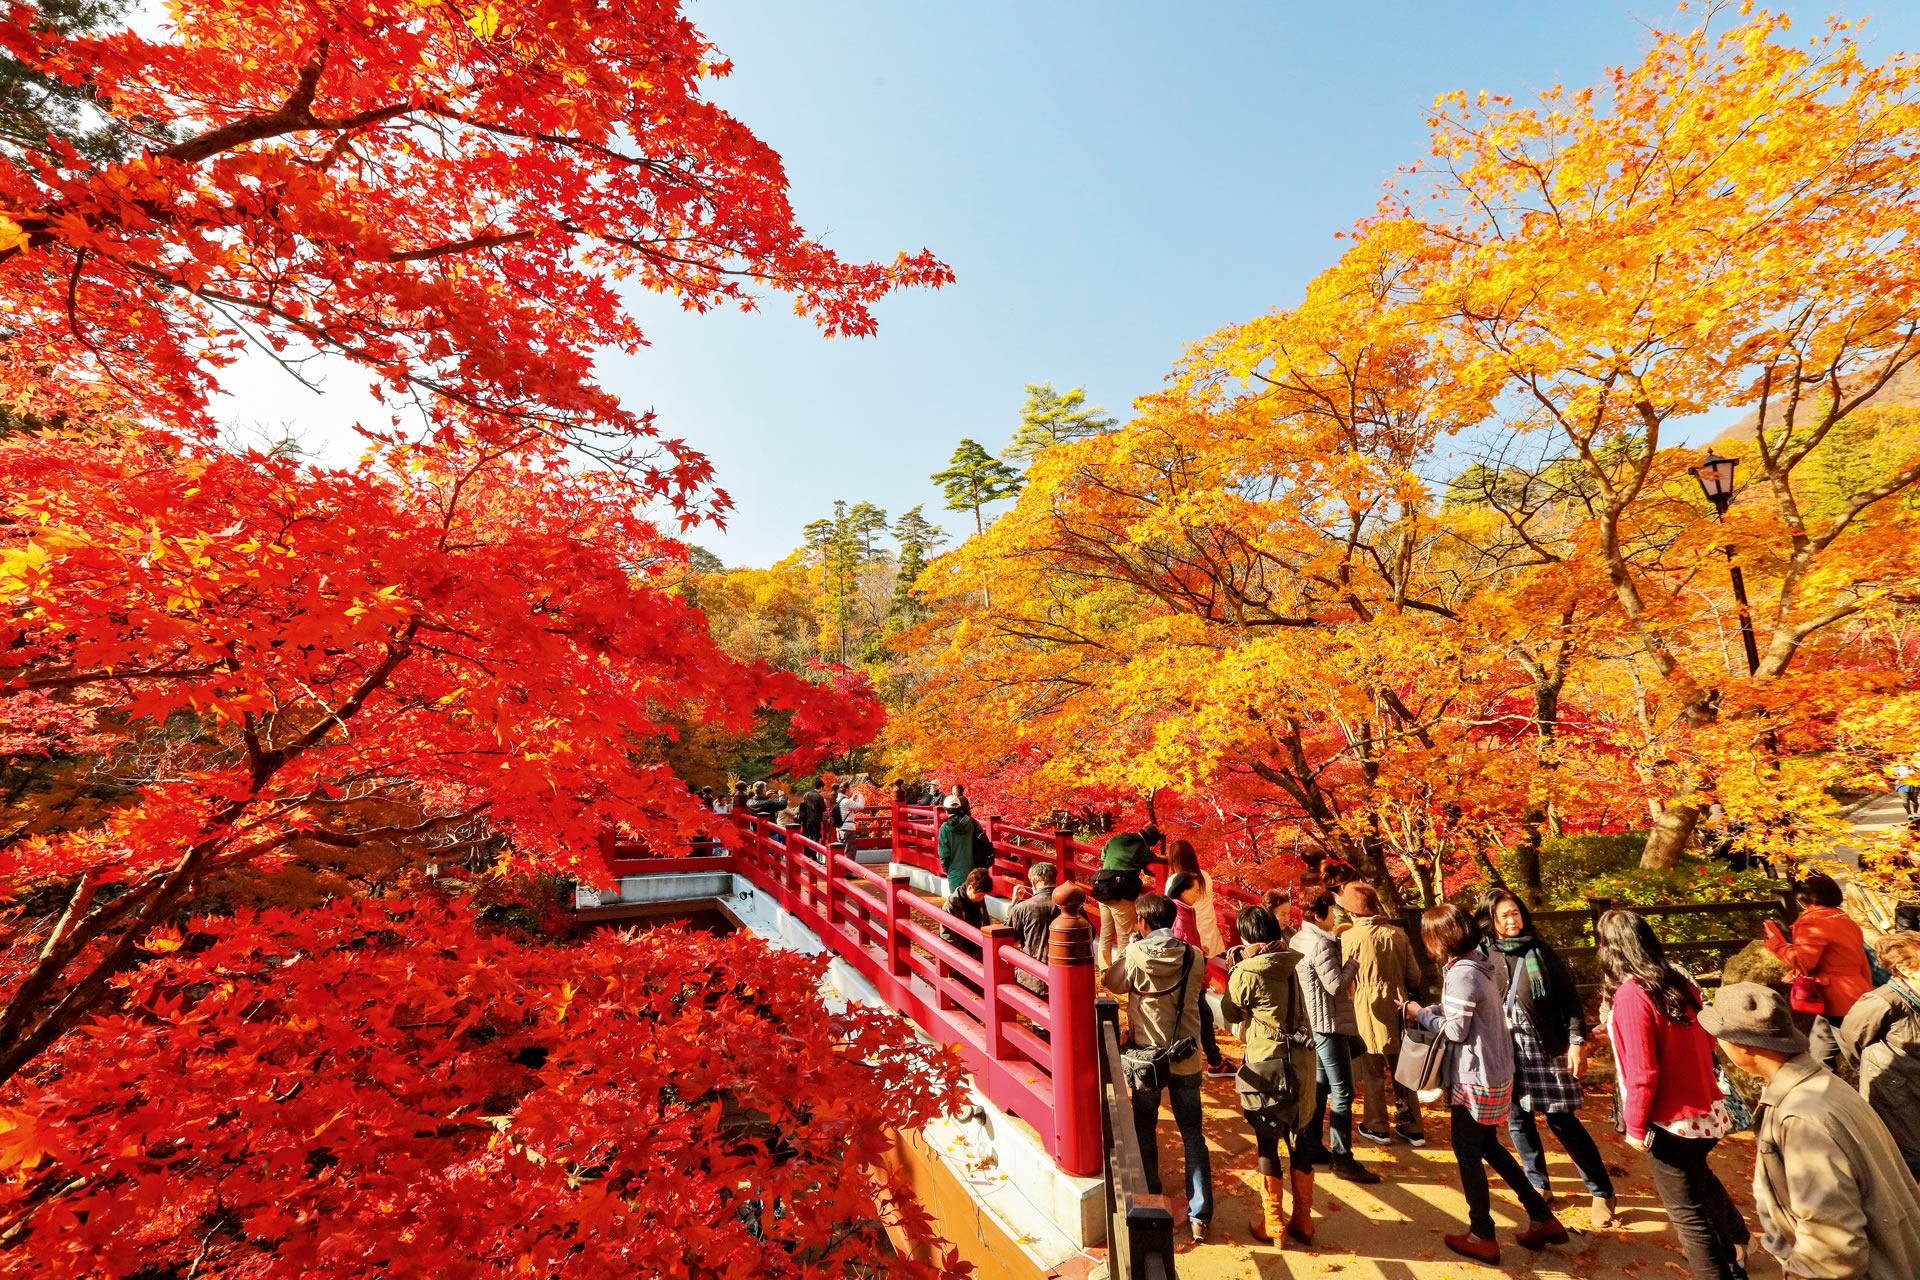 The Maple Valley of the Yahiko Park